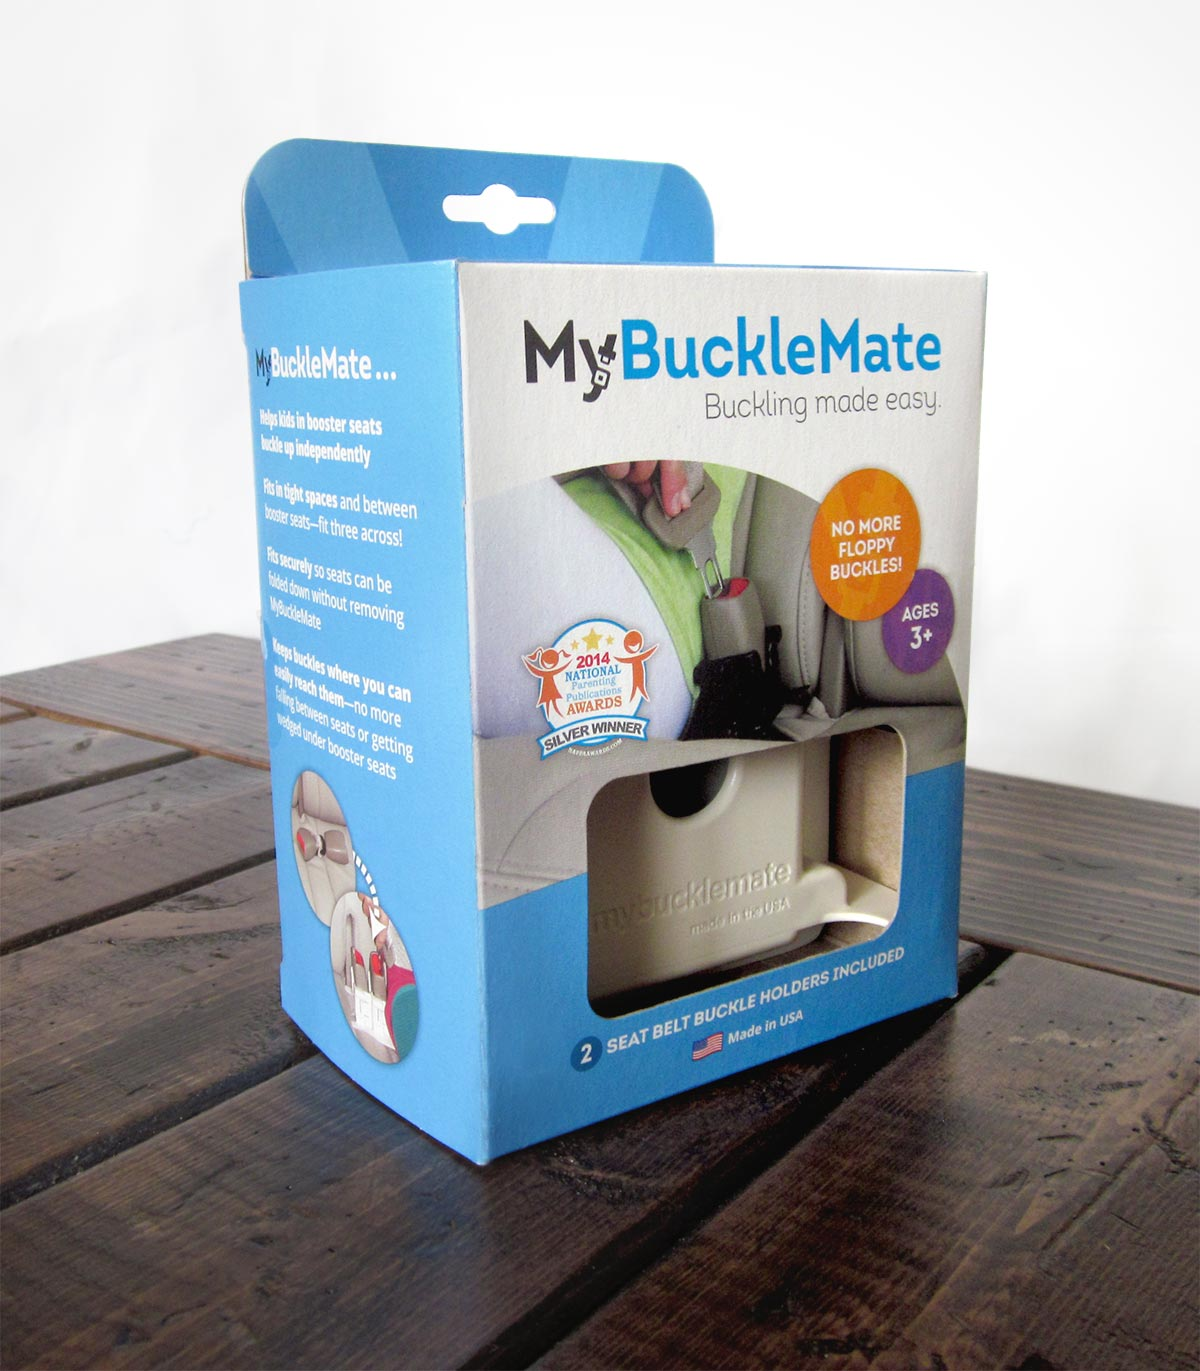 MyBuckleMate package design on a table